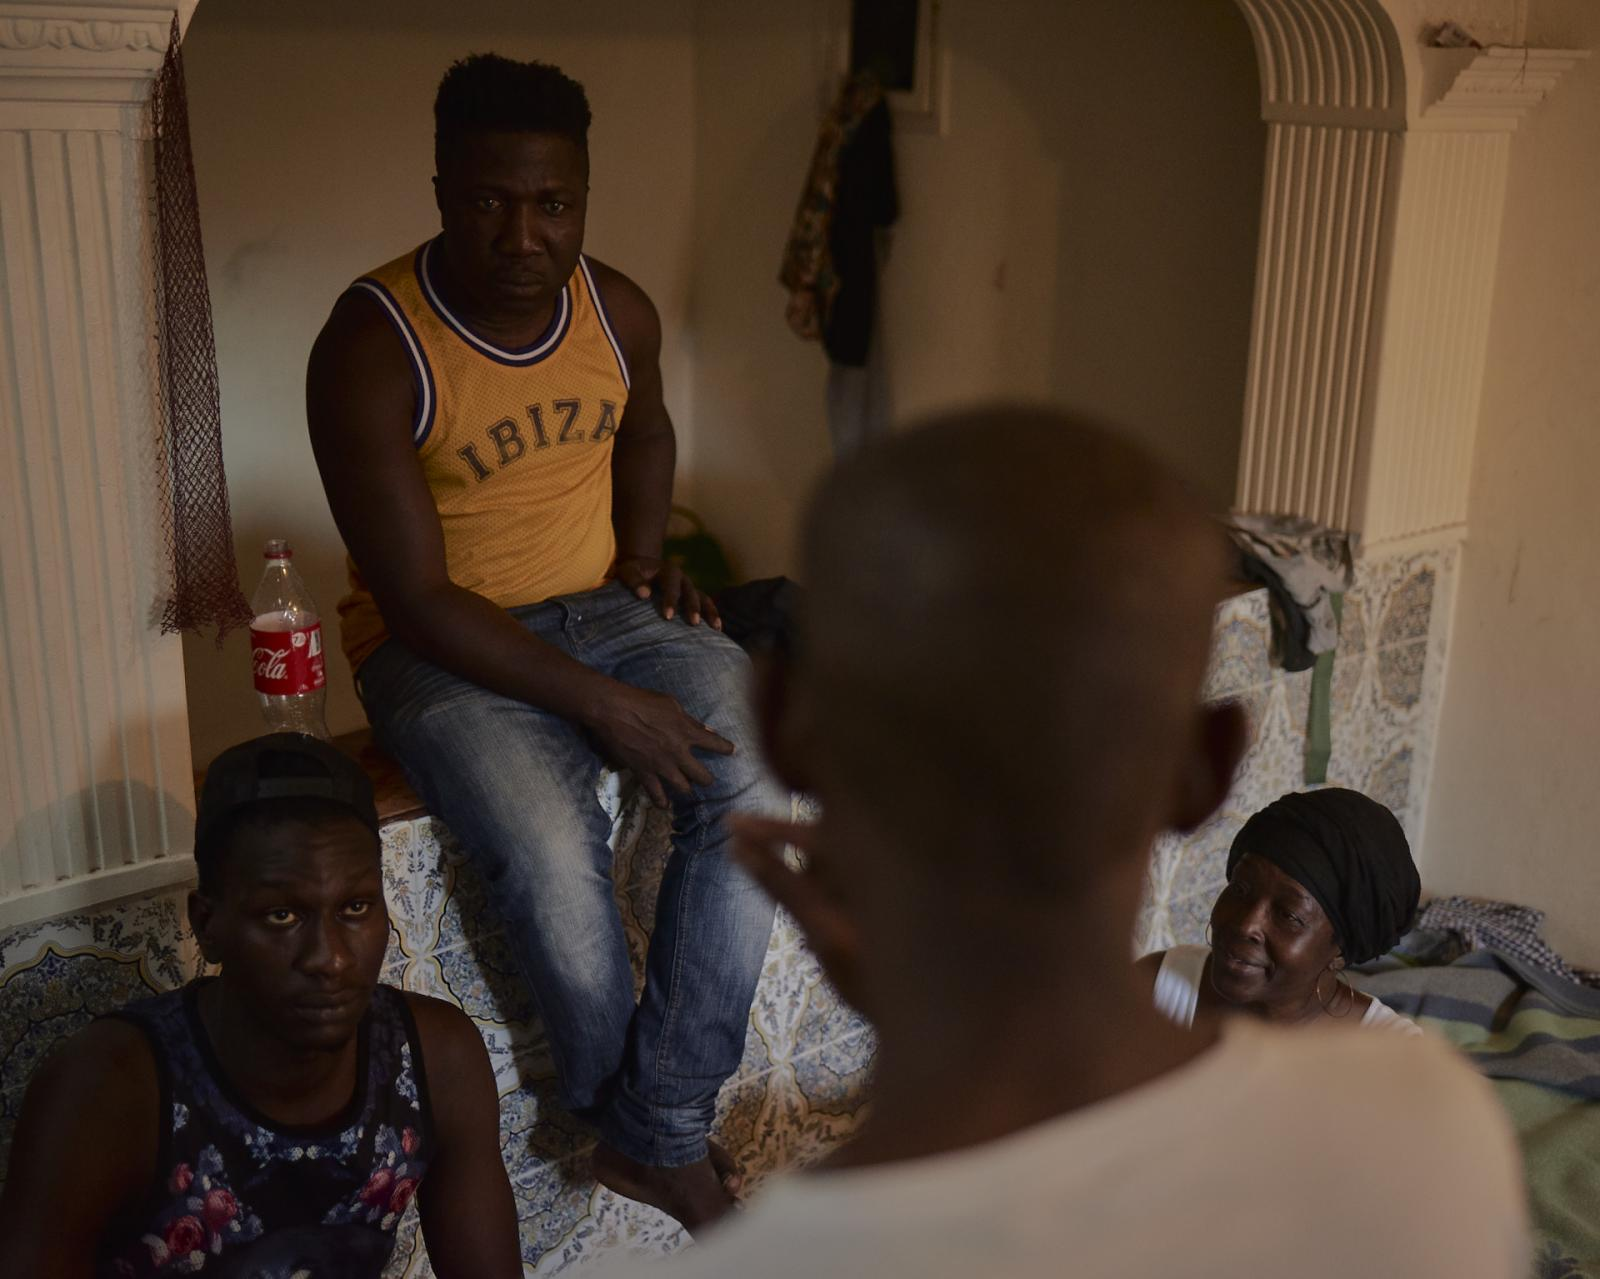 A meeting inside an apartment rented illegally for migrants, where they pay around $300 euros each. Since they can't work, they also can't have access to rent property or benefits. Inside this room, around 9 other people sleep on mattresses on the floor sharing only the basics.